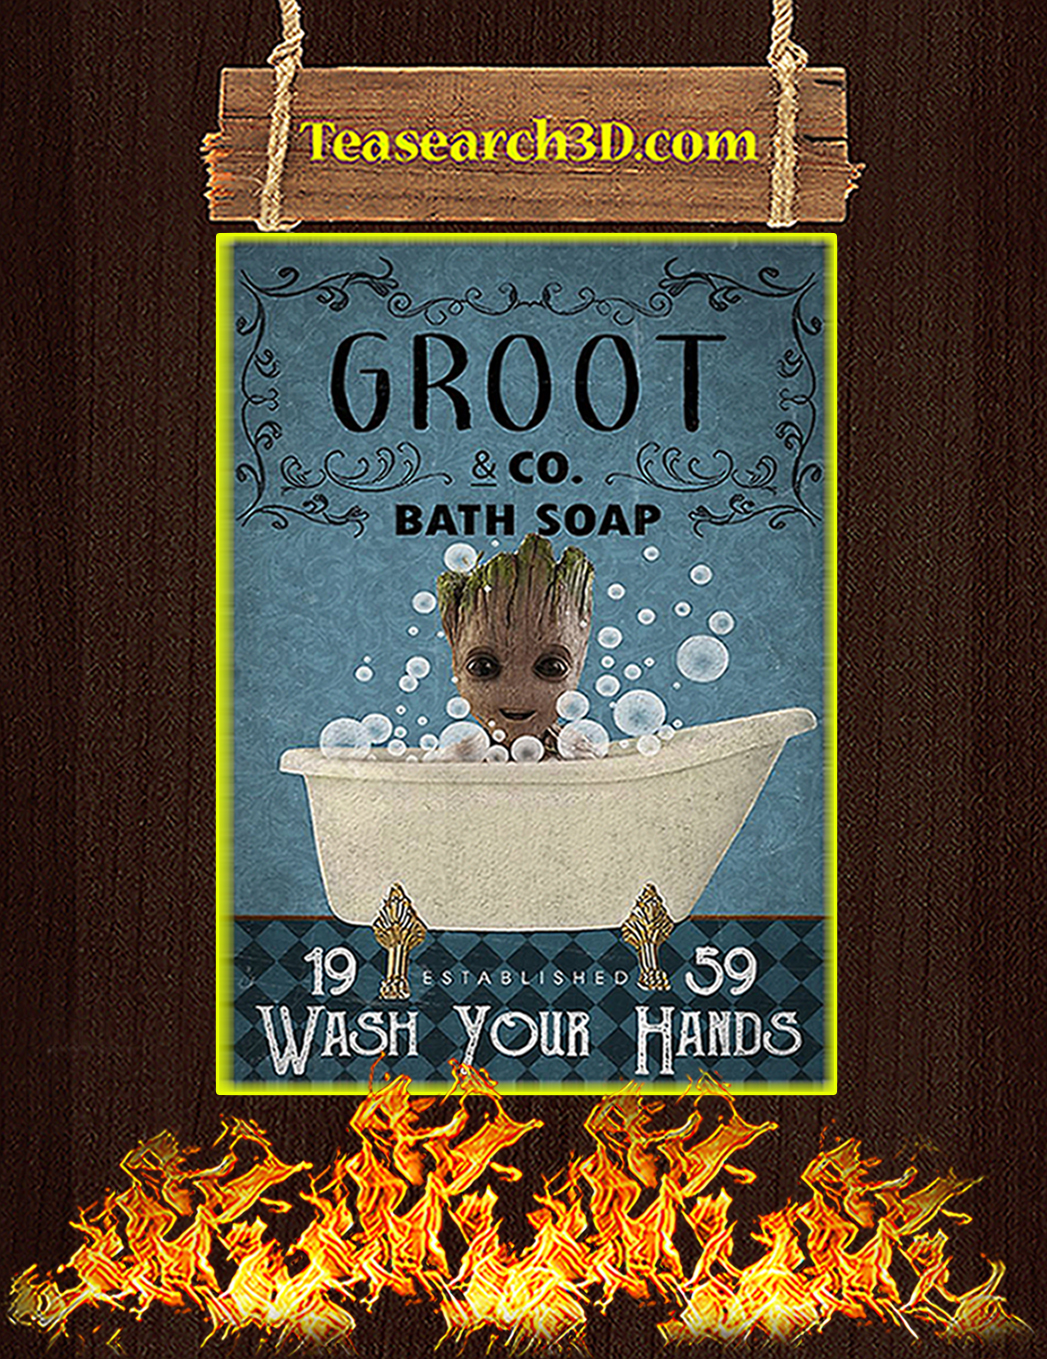 Bath Soap Company Groot Wash Your Hands Poster A1